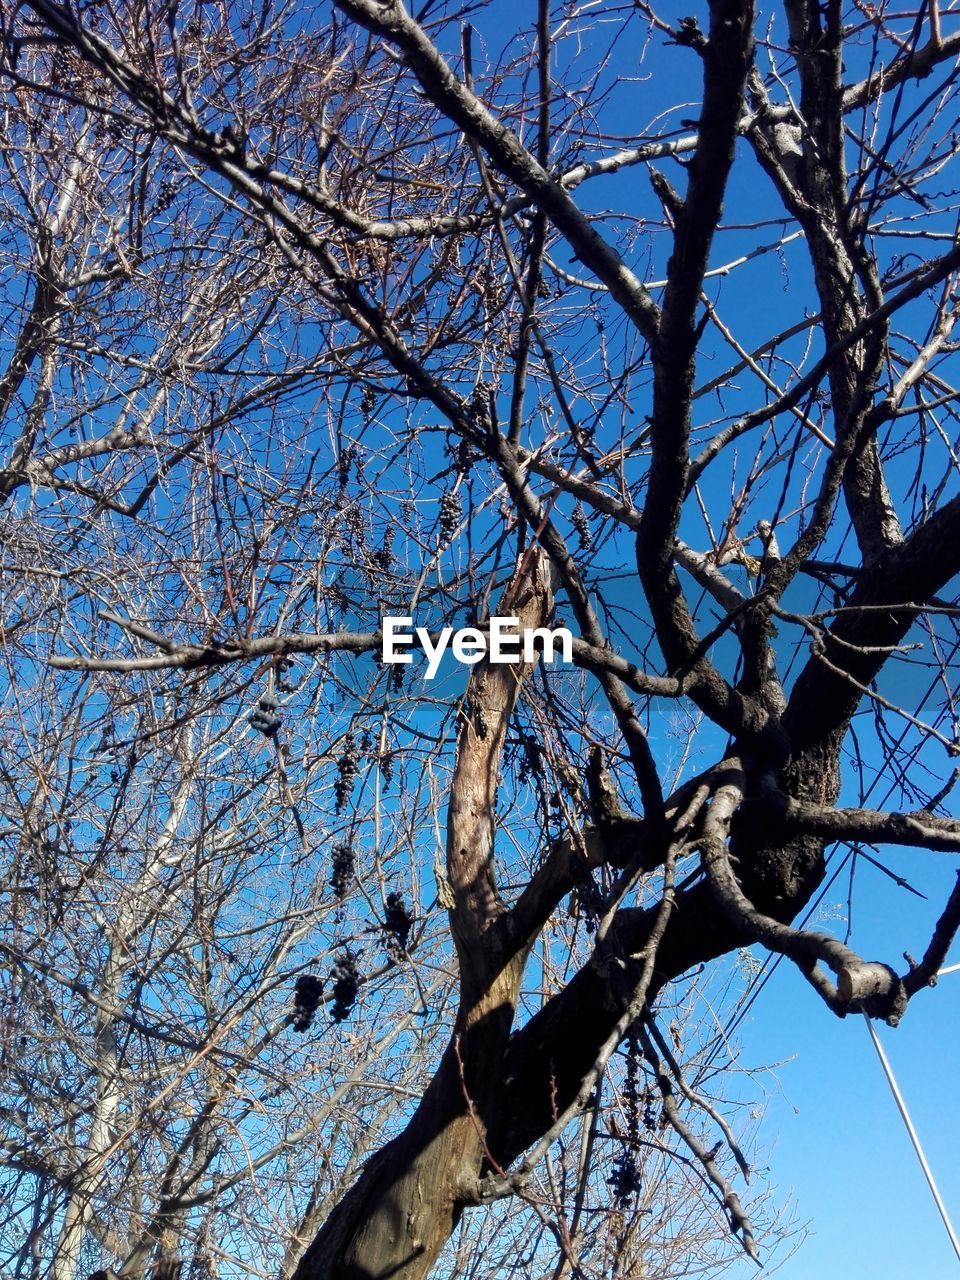 branch, low angle view, tree, bare tree, day, nature, no people, clear sky, outdoors, sky, growth, beauty in nature, blue, dried plant, flower